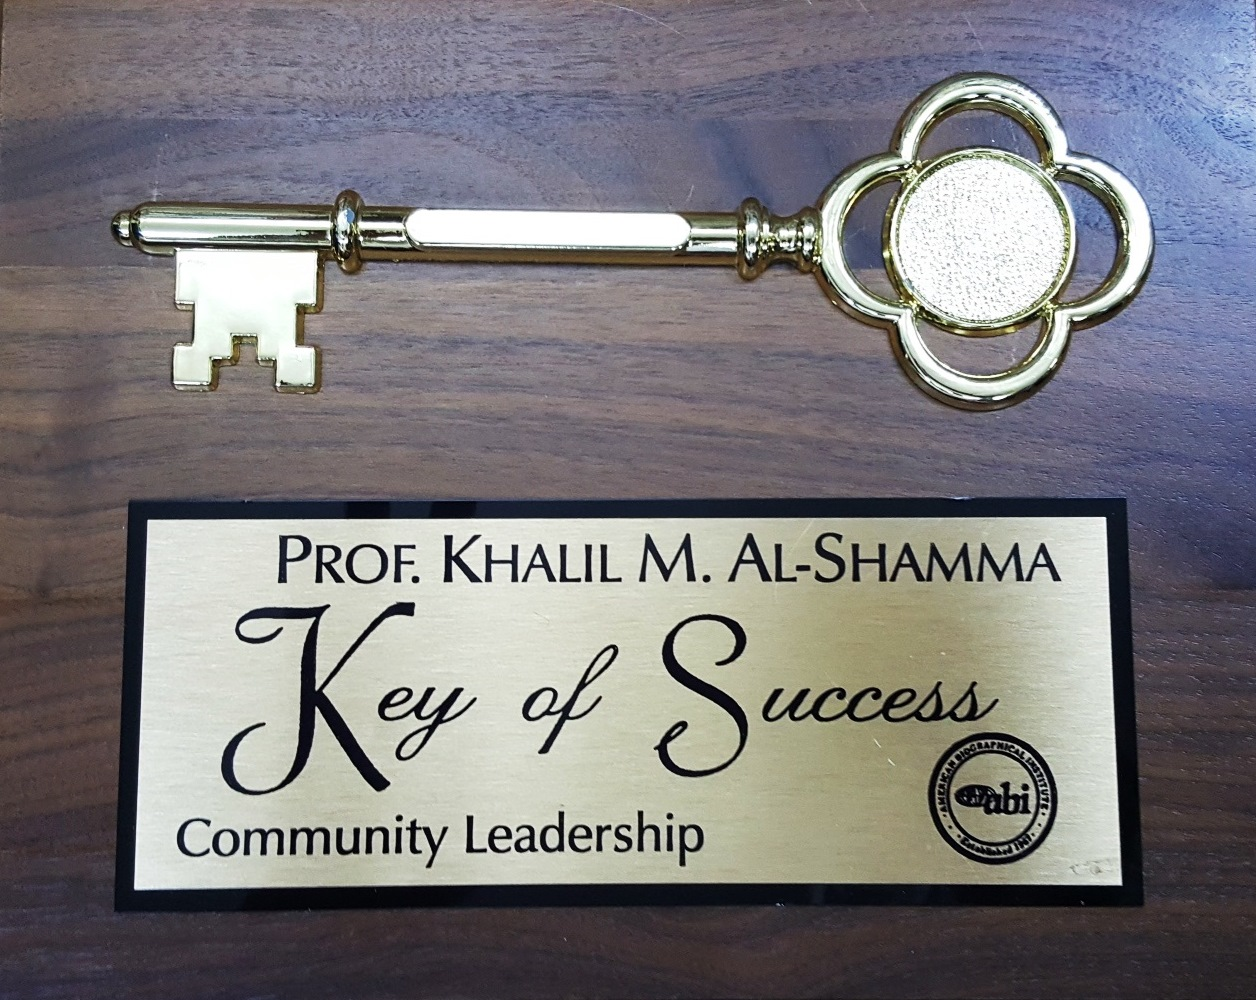 Keys of Success - Community Leadership